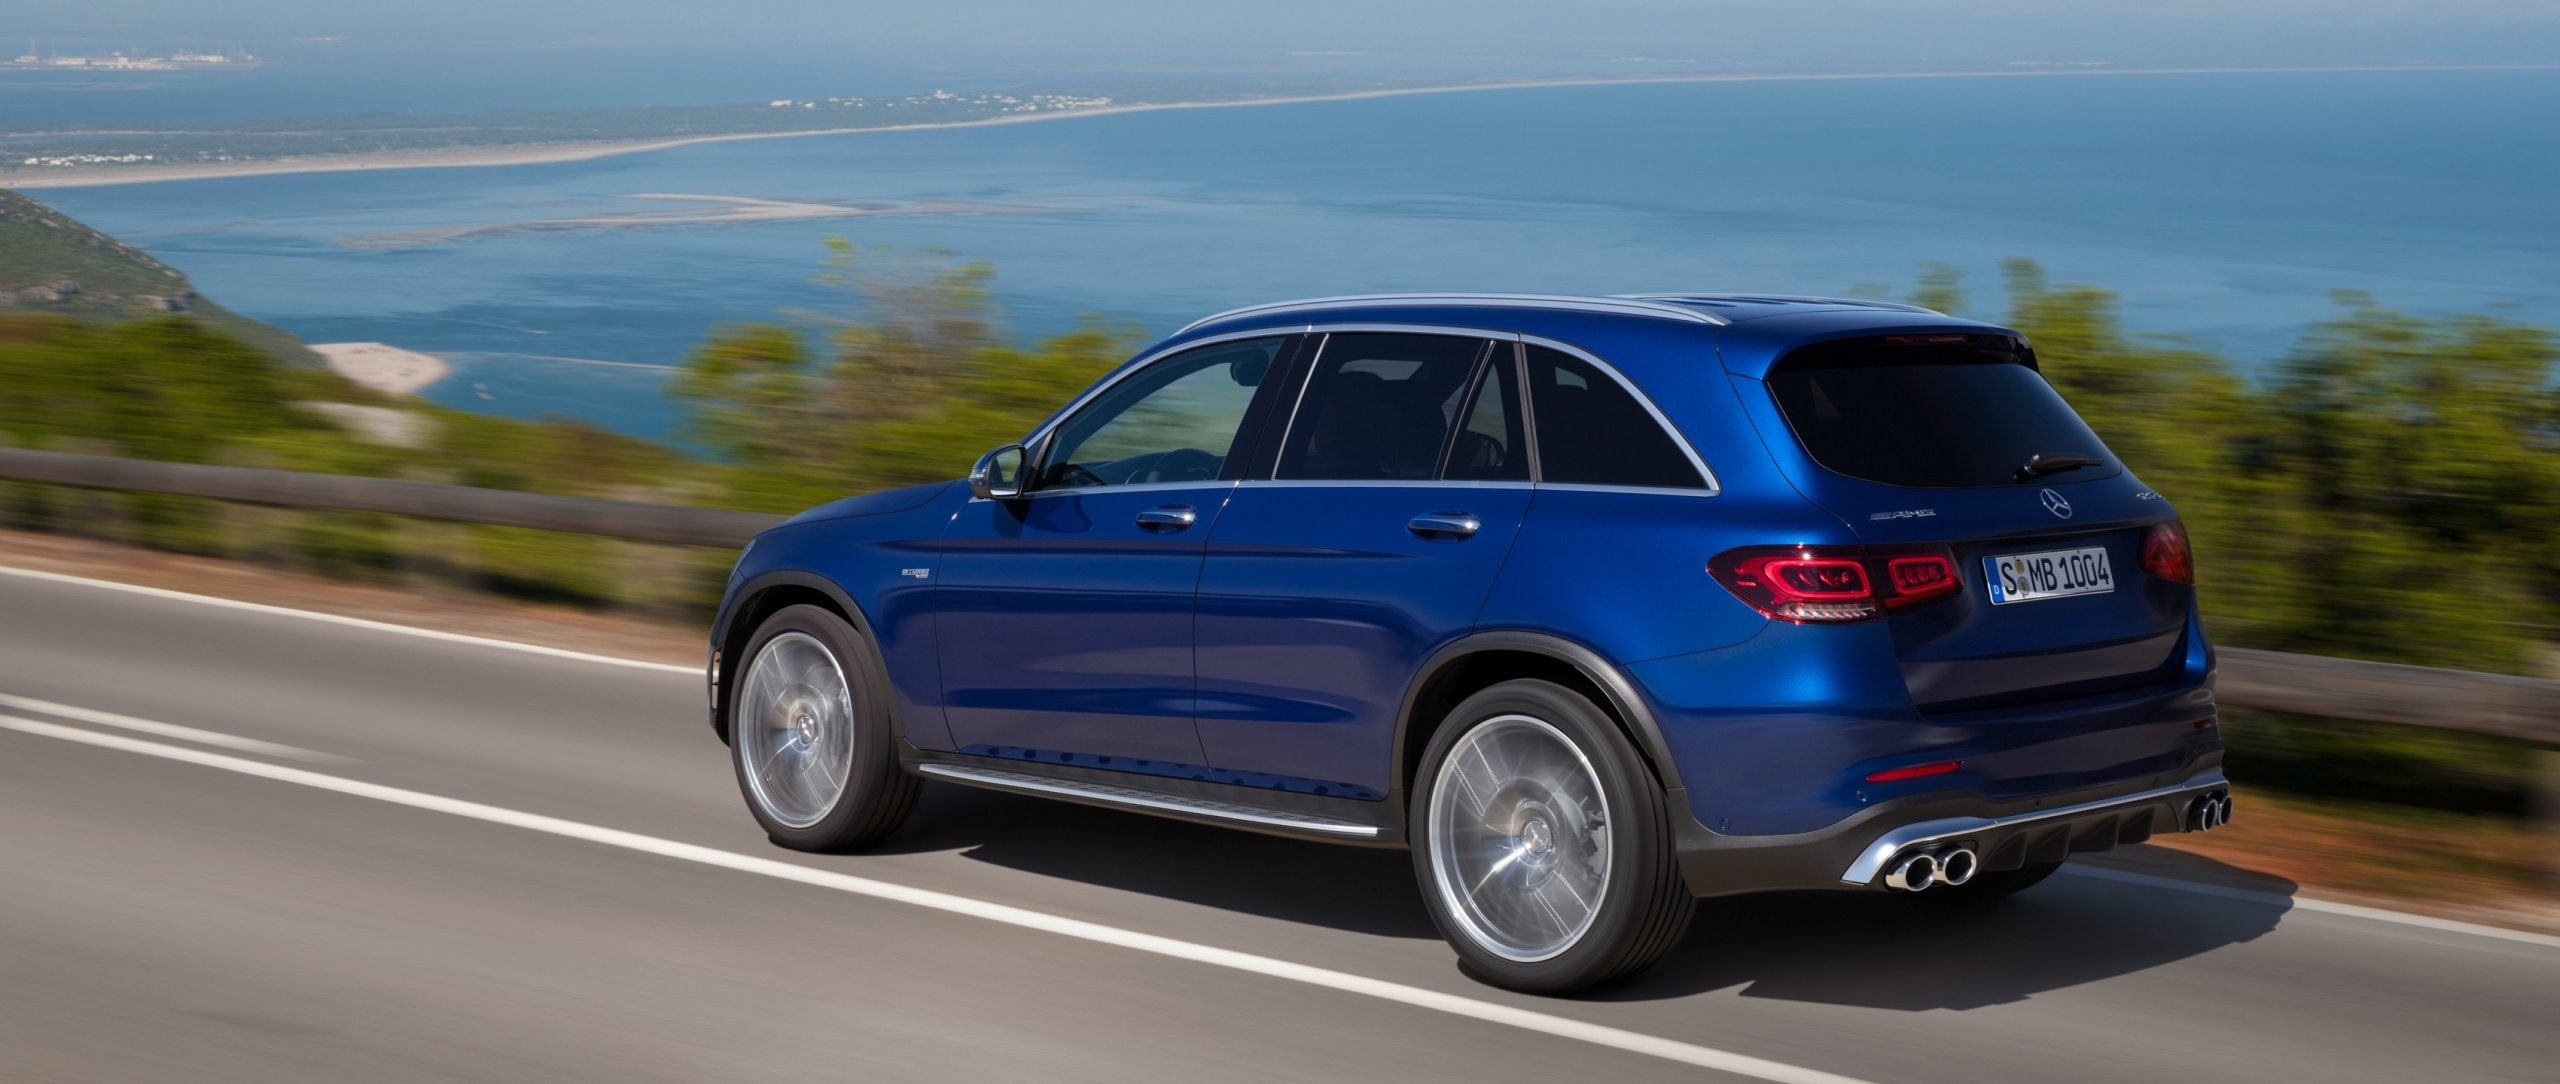 The 2019 Mercedes-AMG GLC 43 4MATIC SUV (X 253) in brilliant blue: rear view on a coastal road.